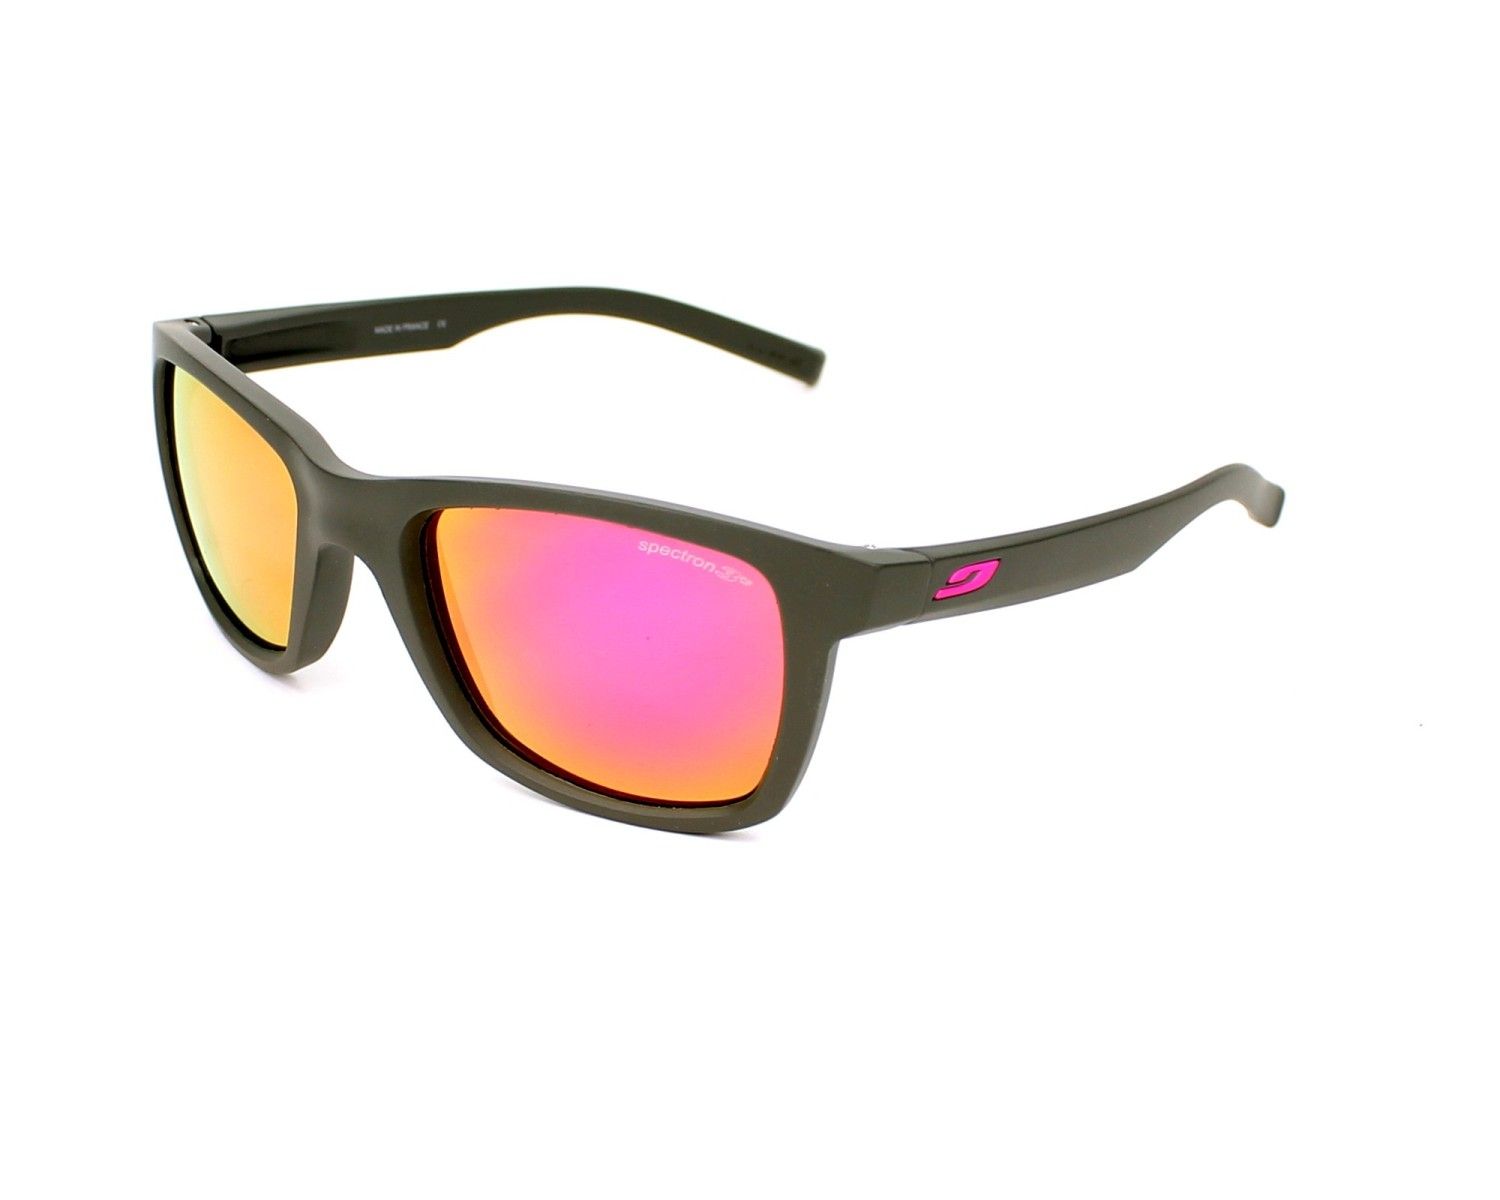 1927eed2ac5f3 Sunglasses Julbo J477 1154 50-19 Grey Pink profile view